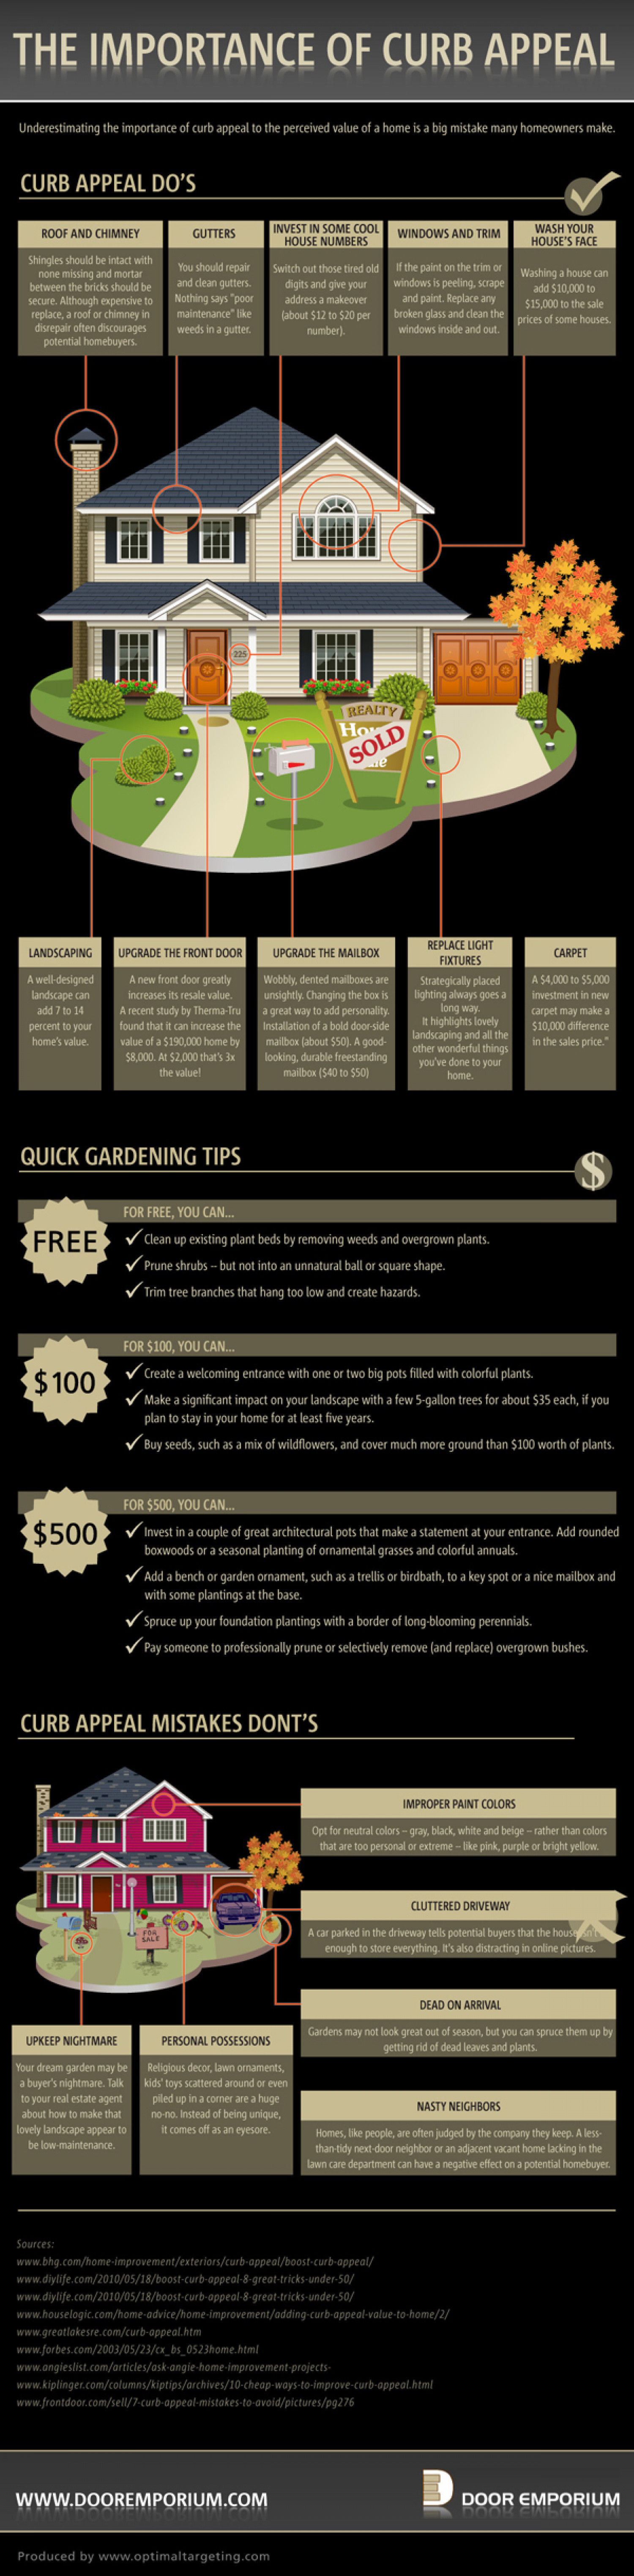 The Importance of Curb Appeal Infographic